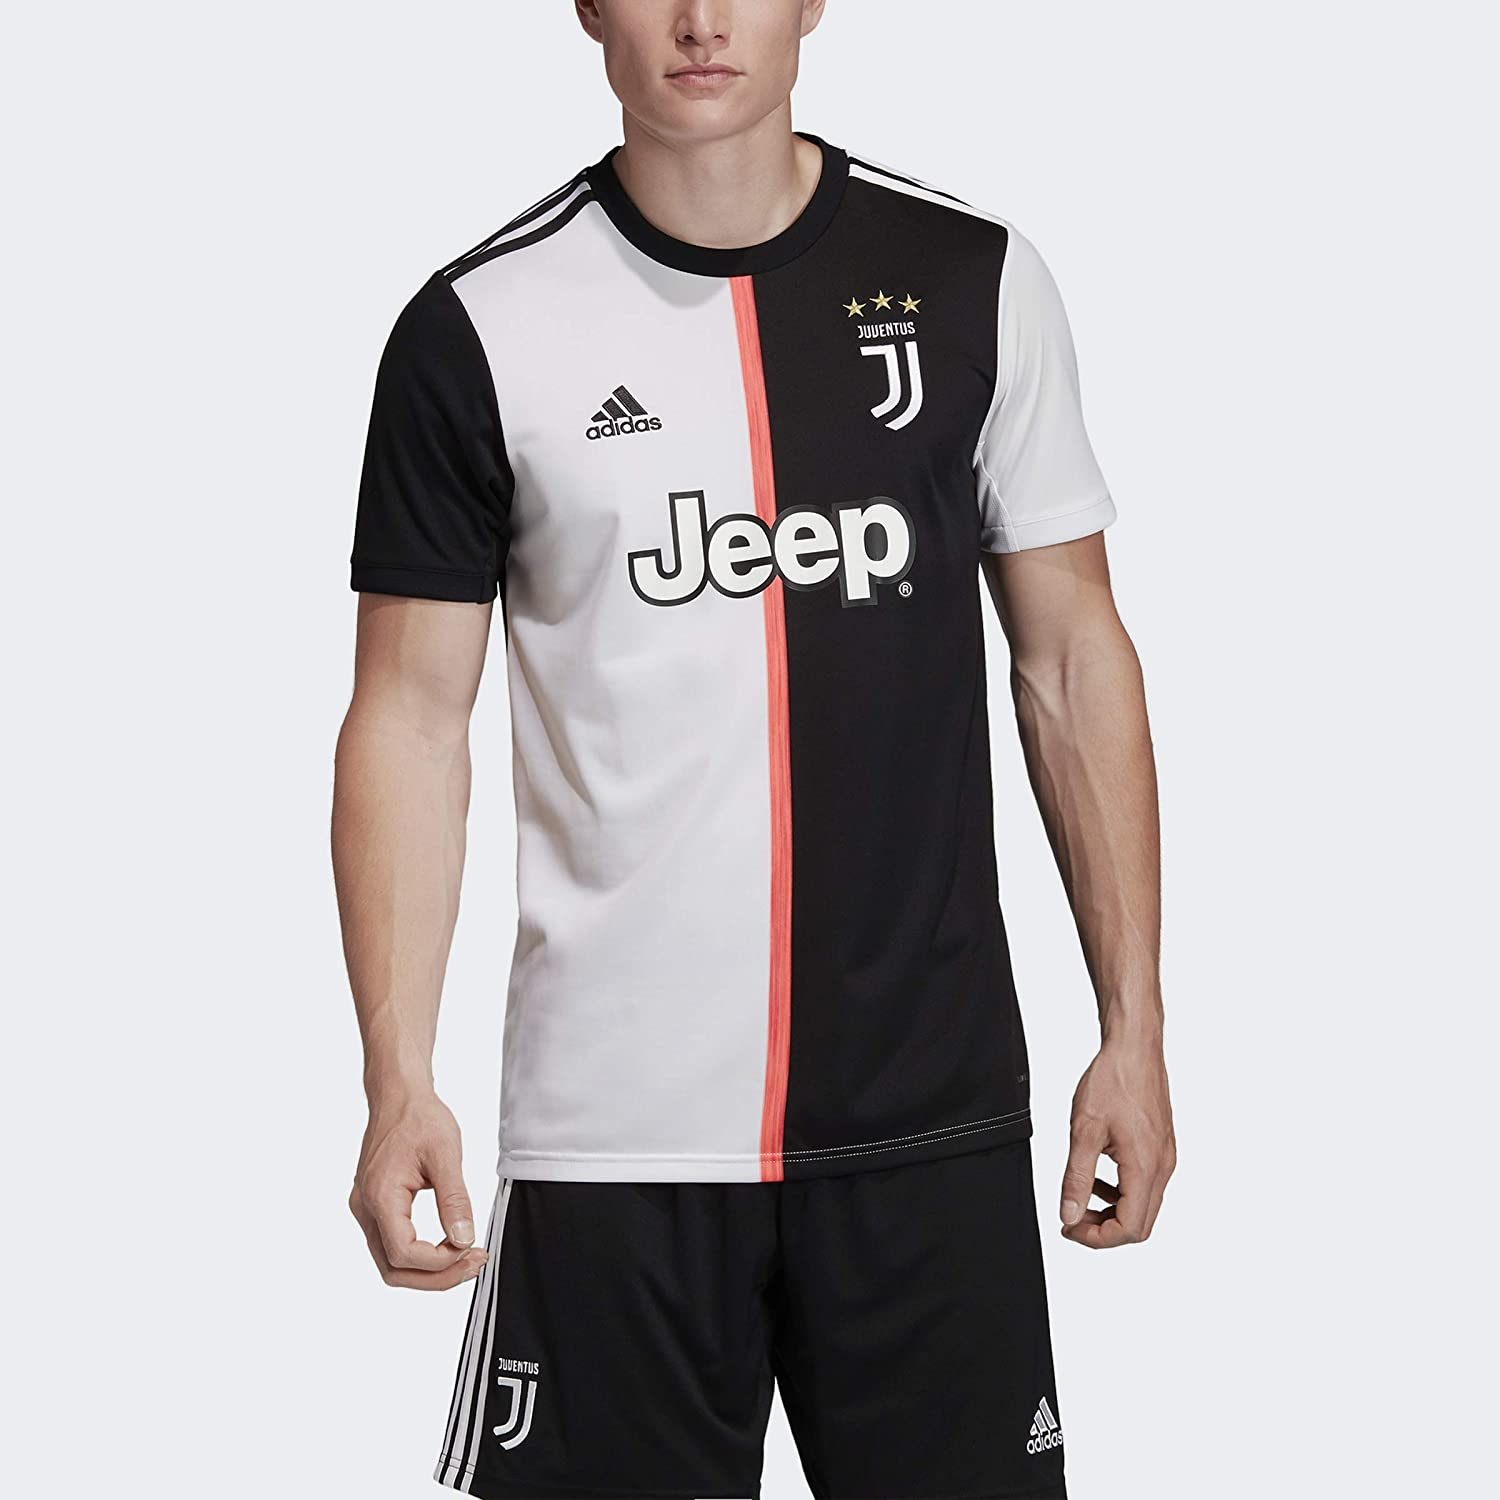 amazon com adidas juventus adult home replica jersey dw5455 clothing adidas juventus adult home replica